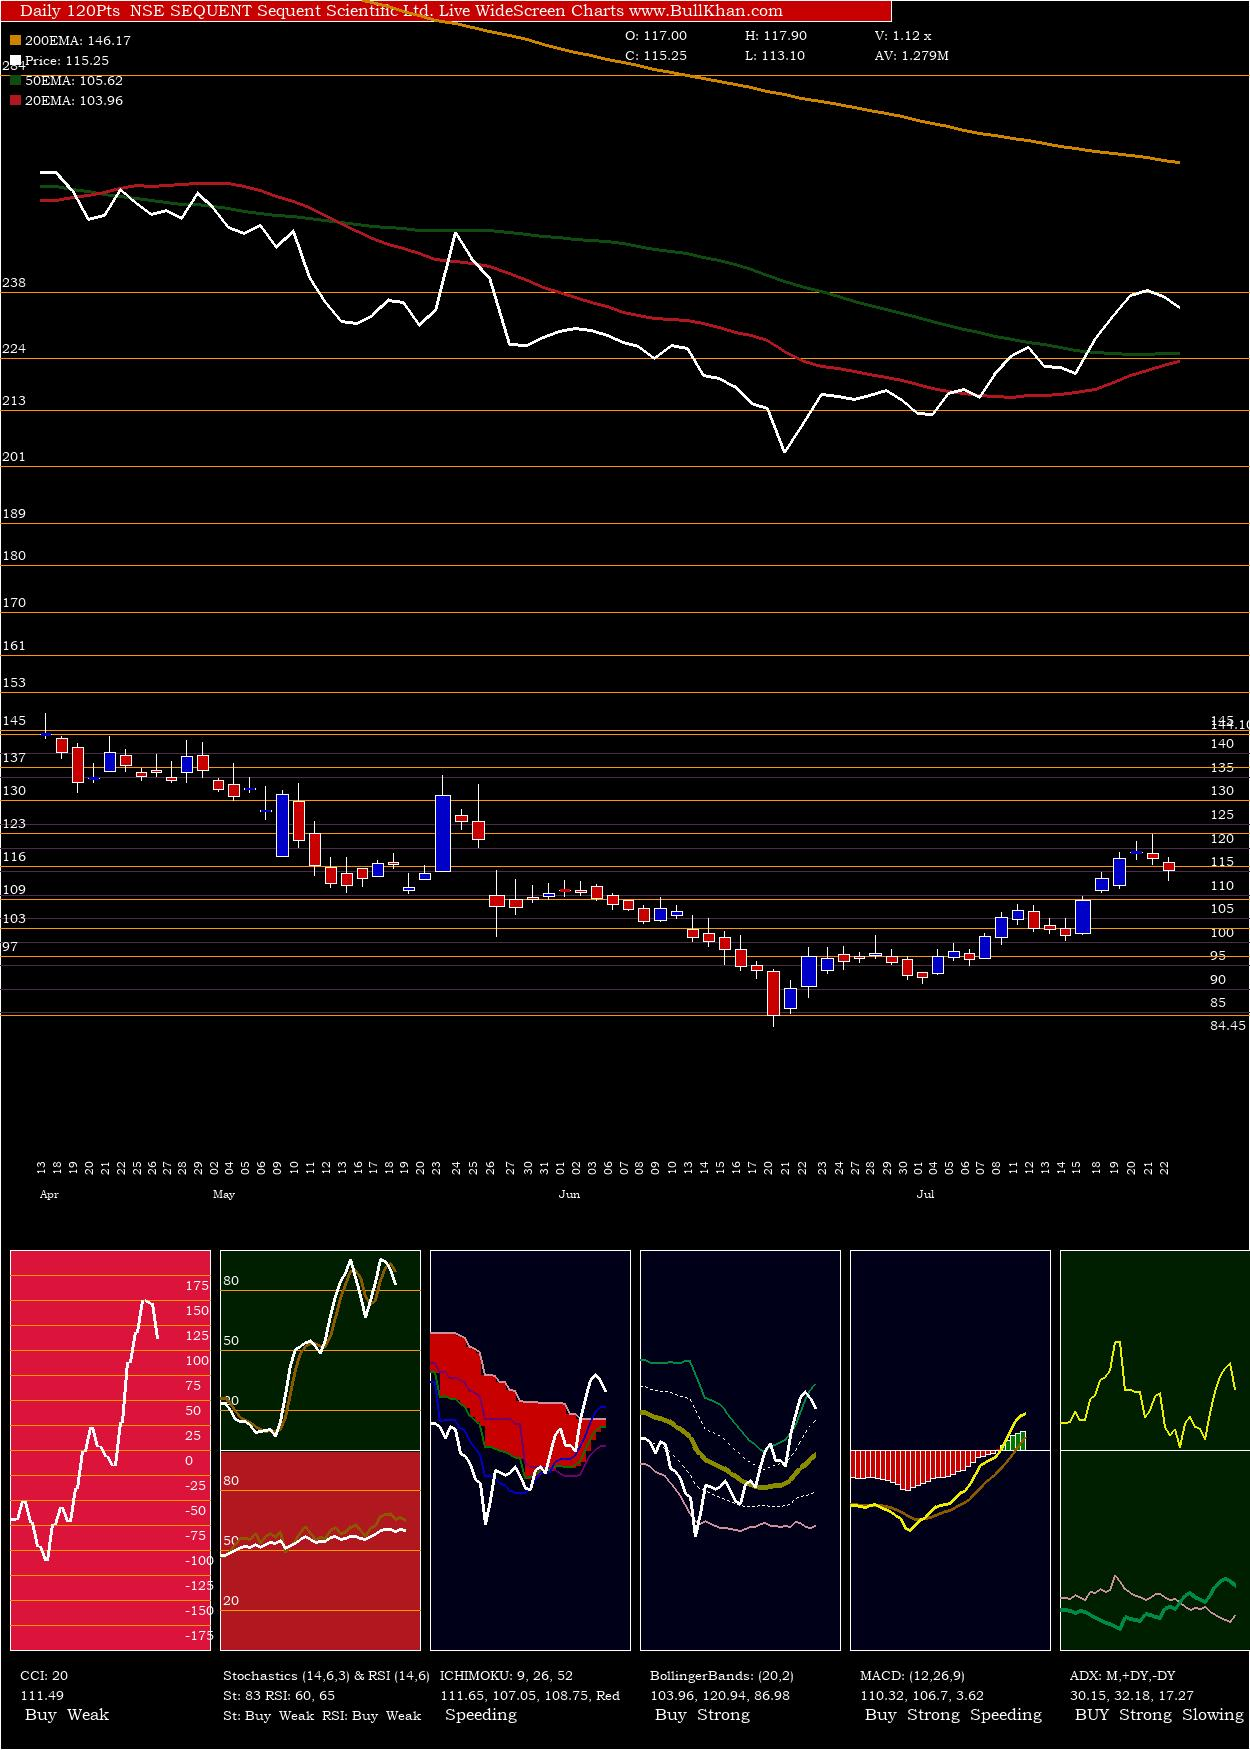 Sequent Scientific charts and indicators